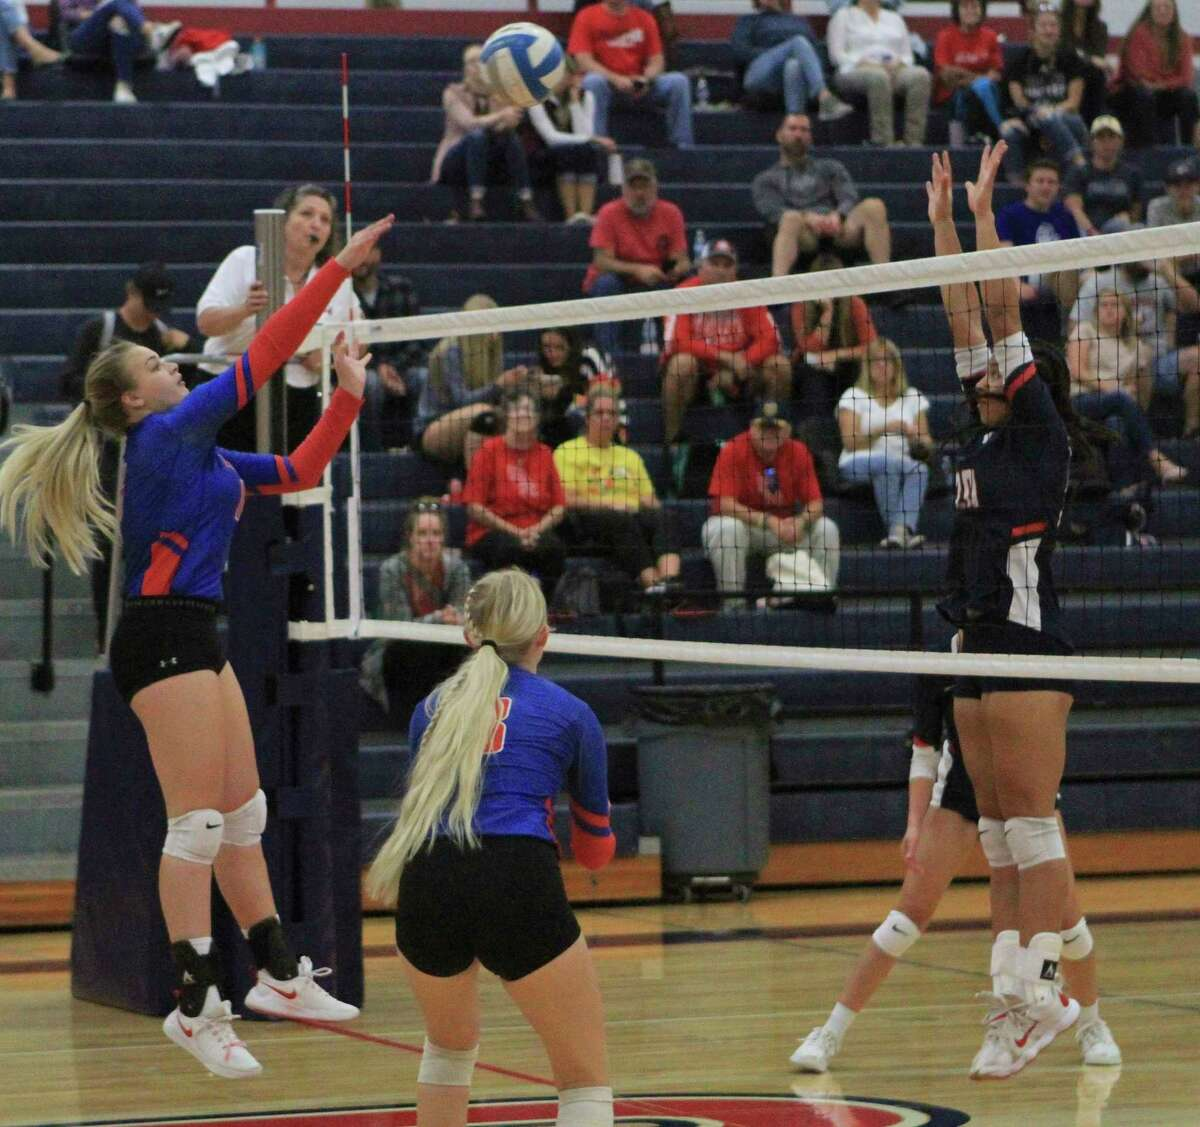 It took the Chippewa Hills volleyball team three sets to defeat Big Rapids on the road Tuesday evening. (Pioneer photo/Joe Judd)